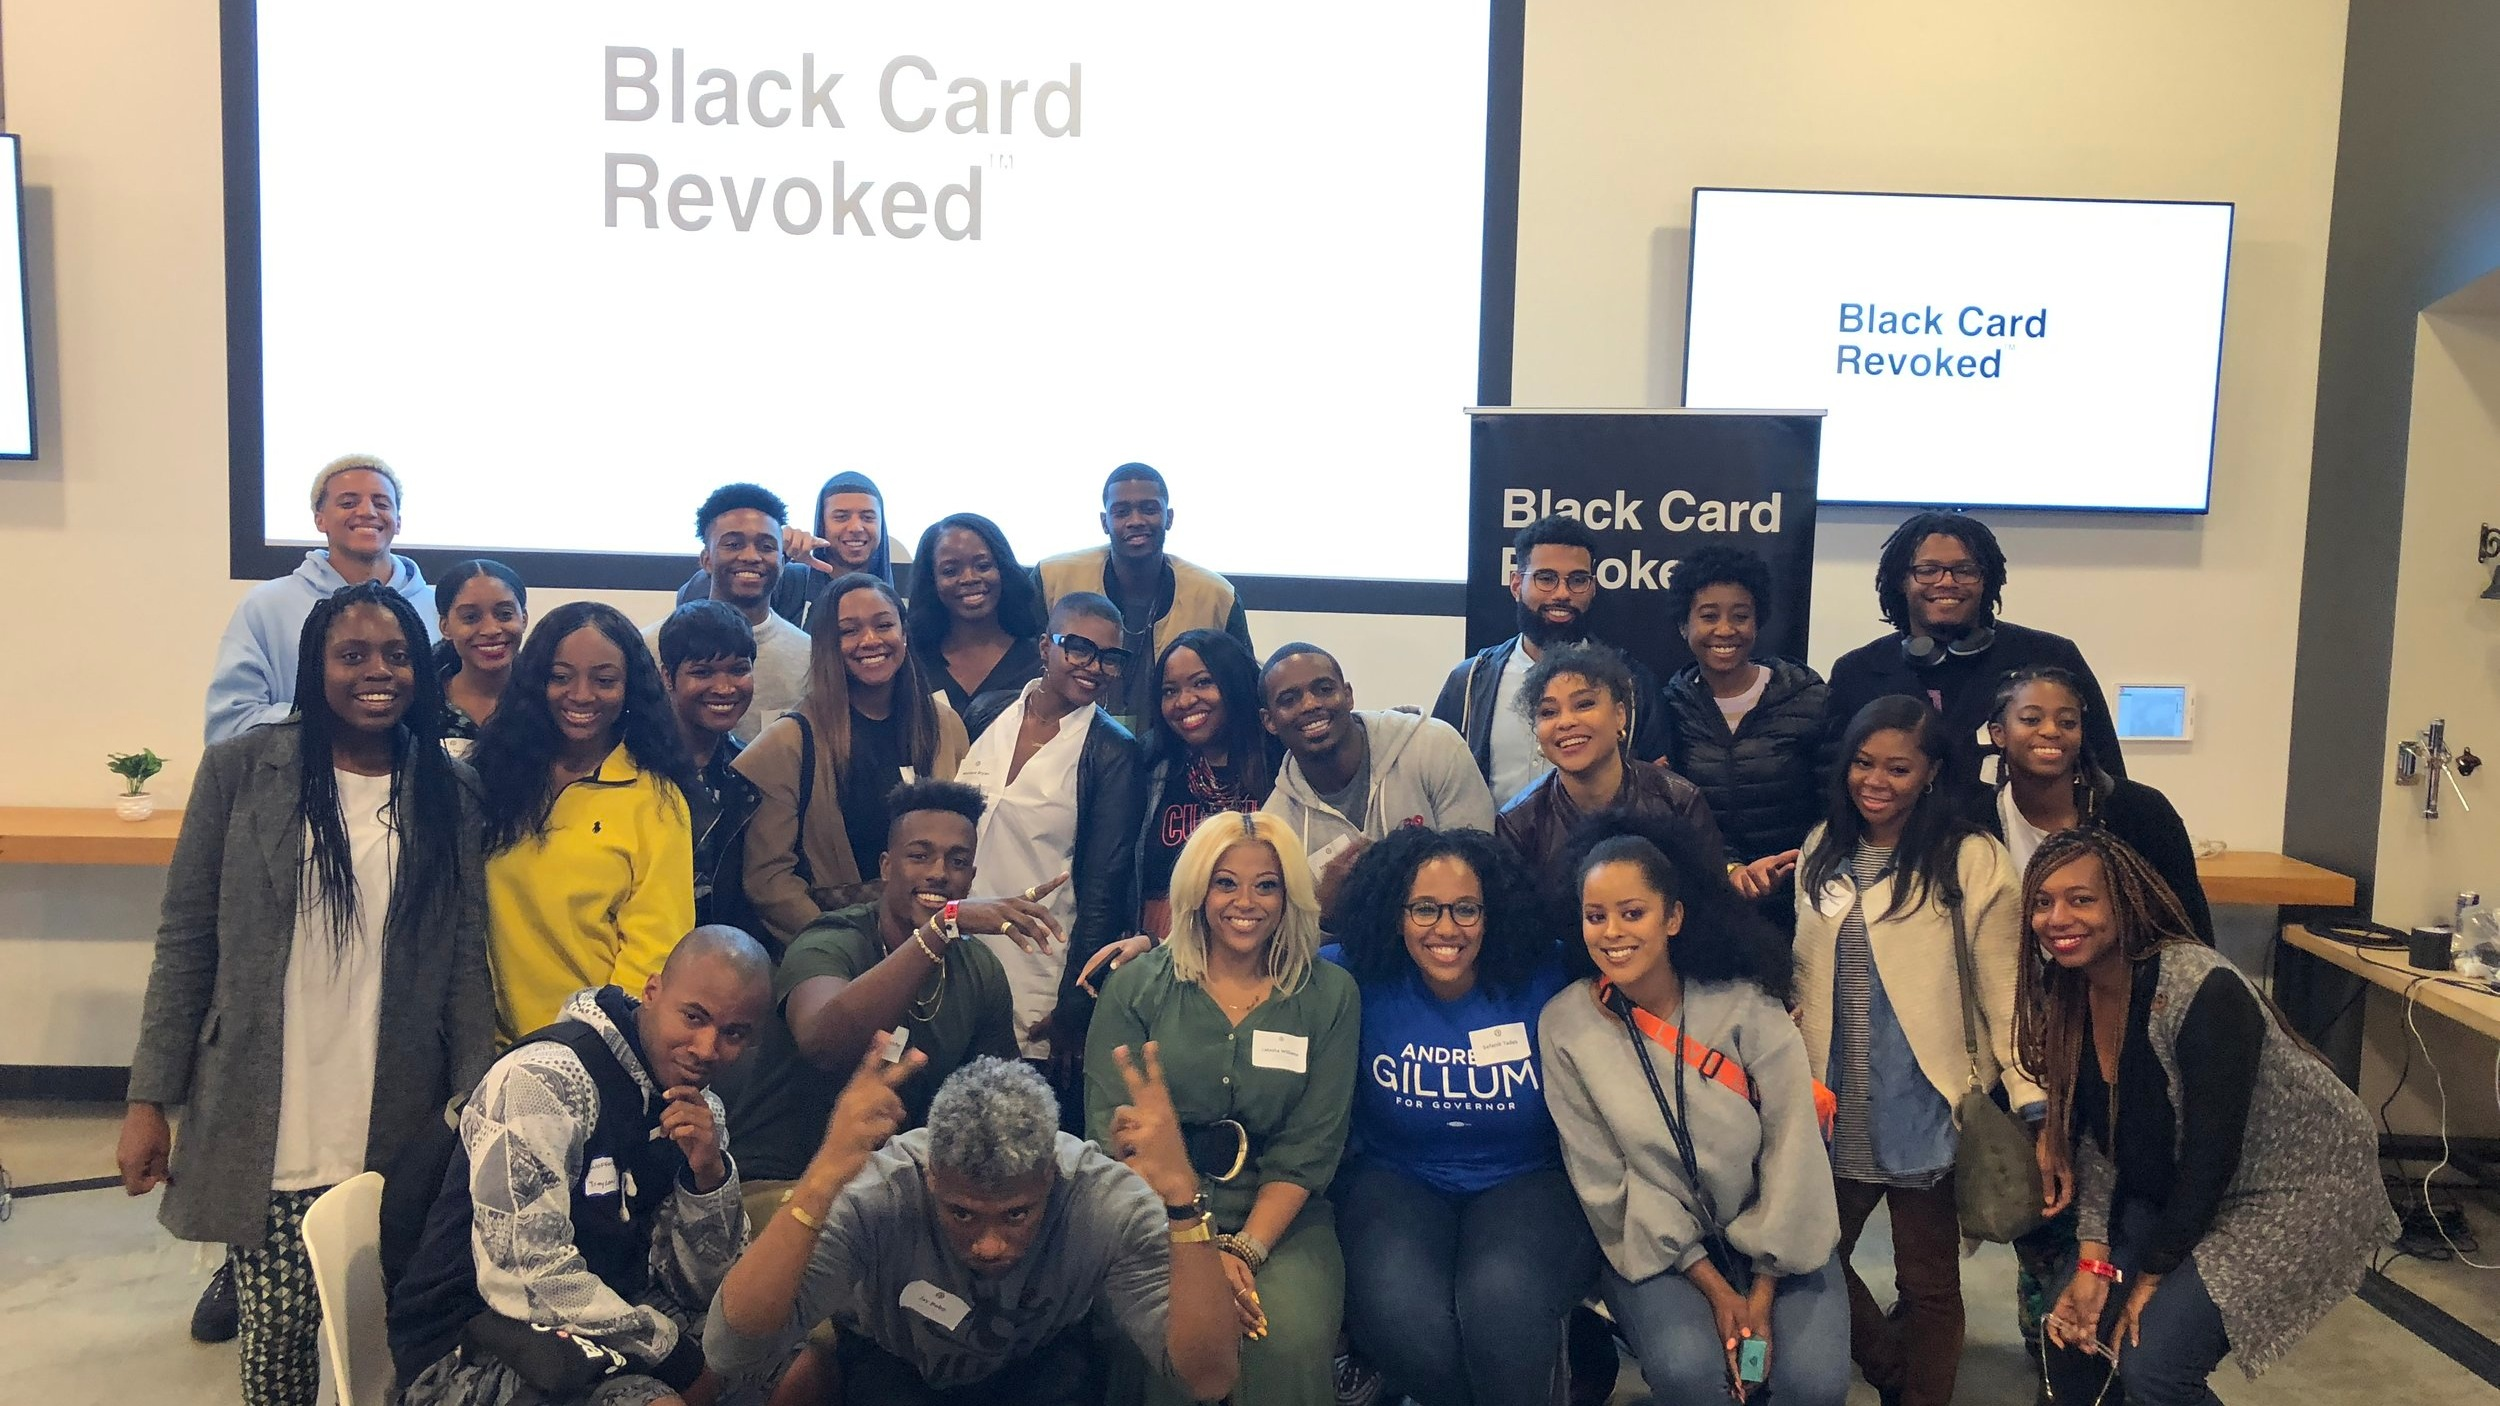 What's better than a game of Black Card Revoked for a room full of Black folks? Nothing fun and all laughs at Pinterest Palooza Afrotech 2018 Happy Hour